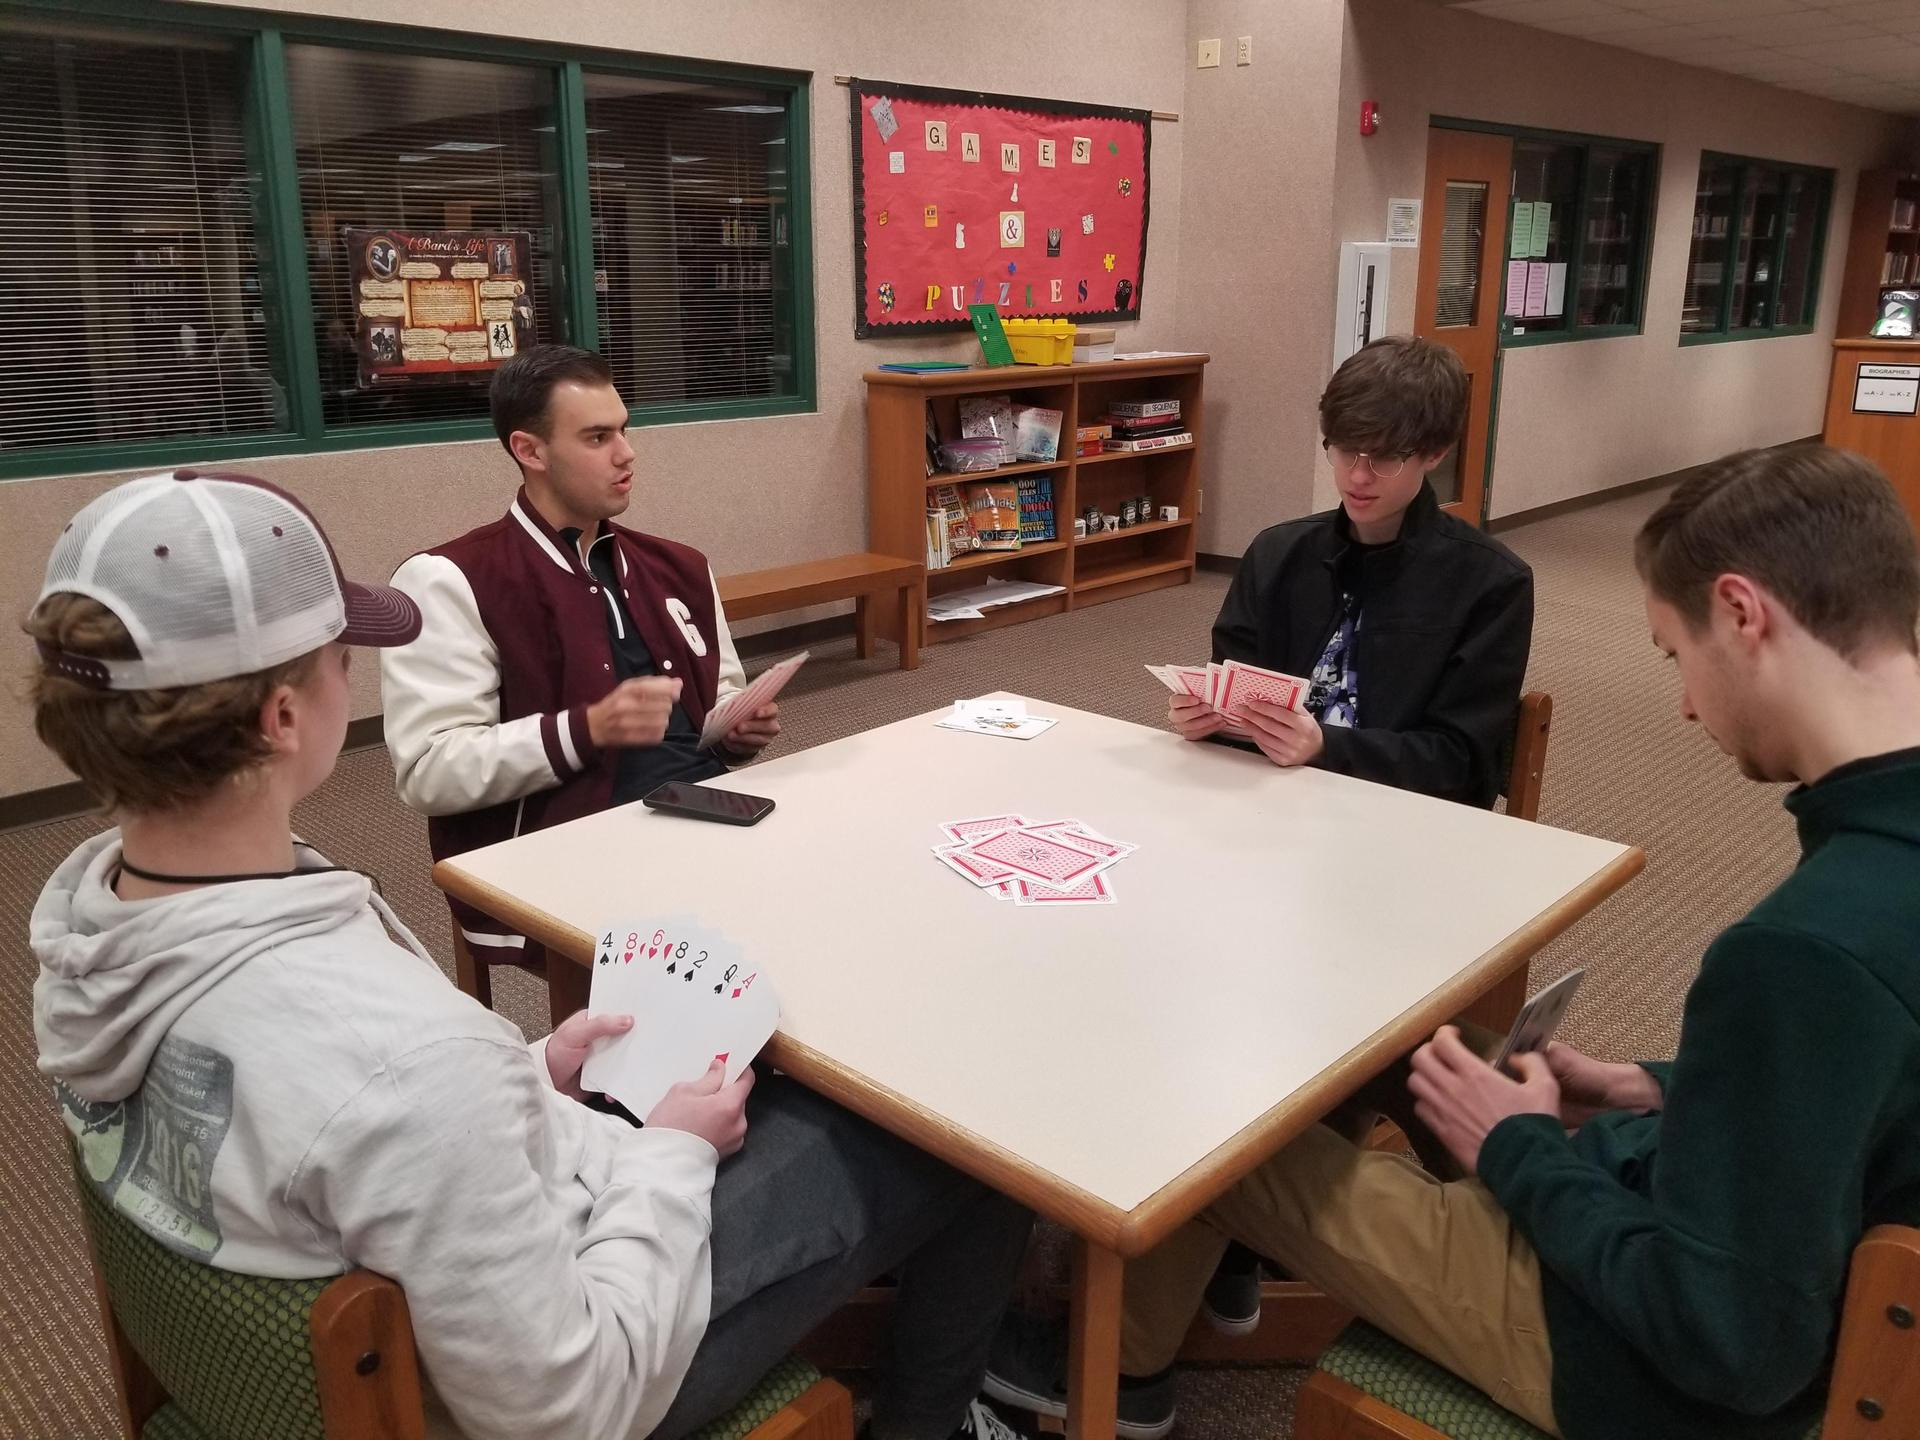 Four male students play cards together at a table